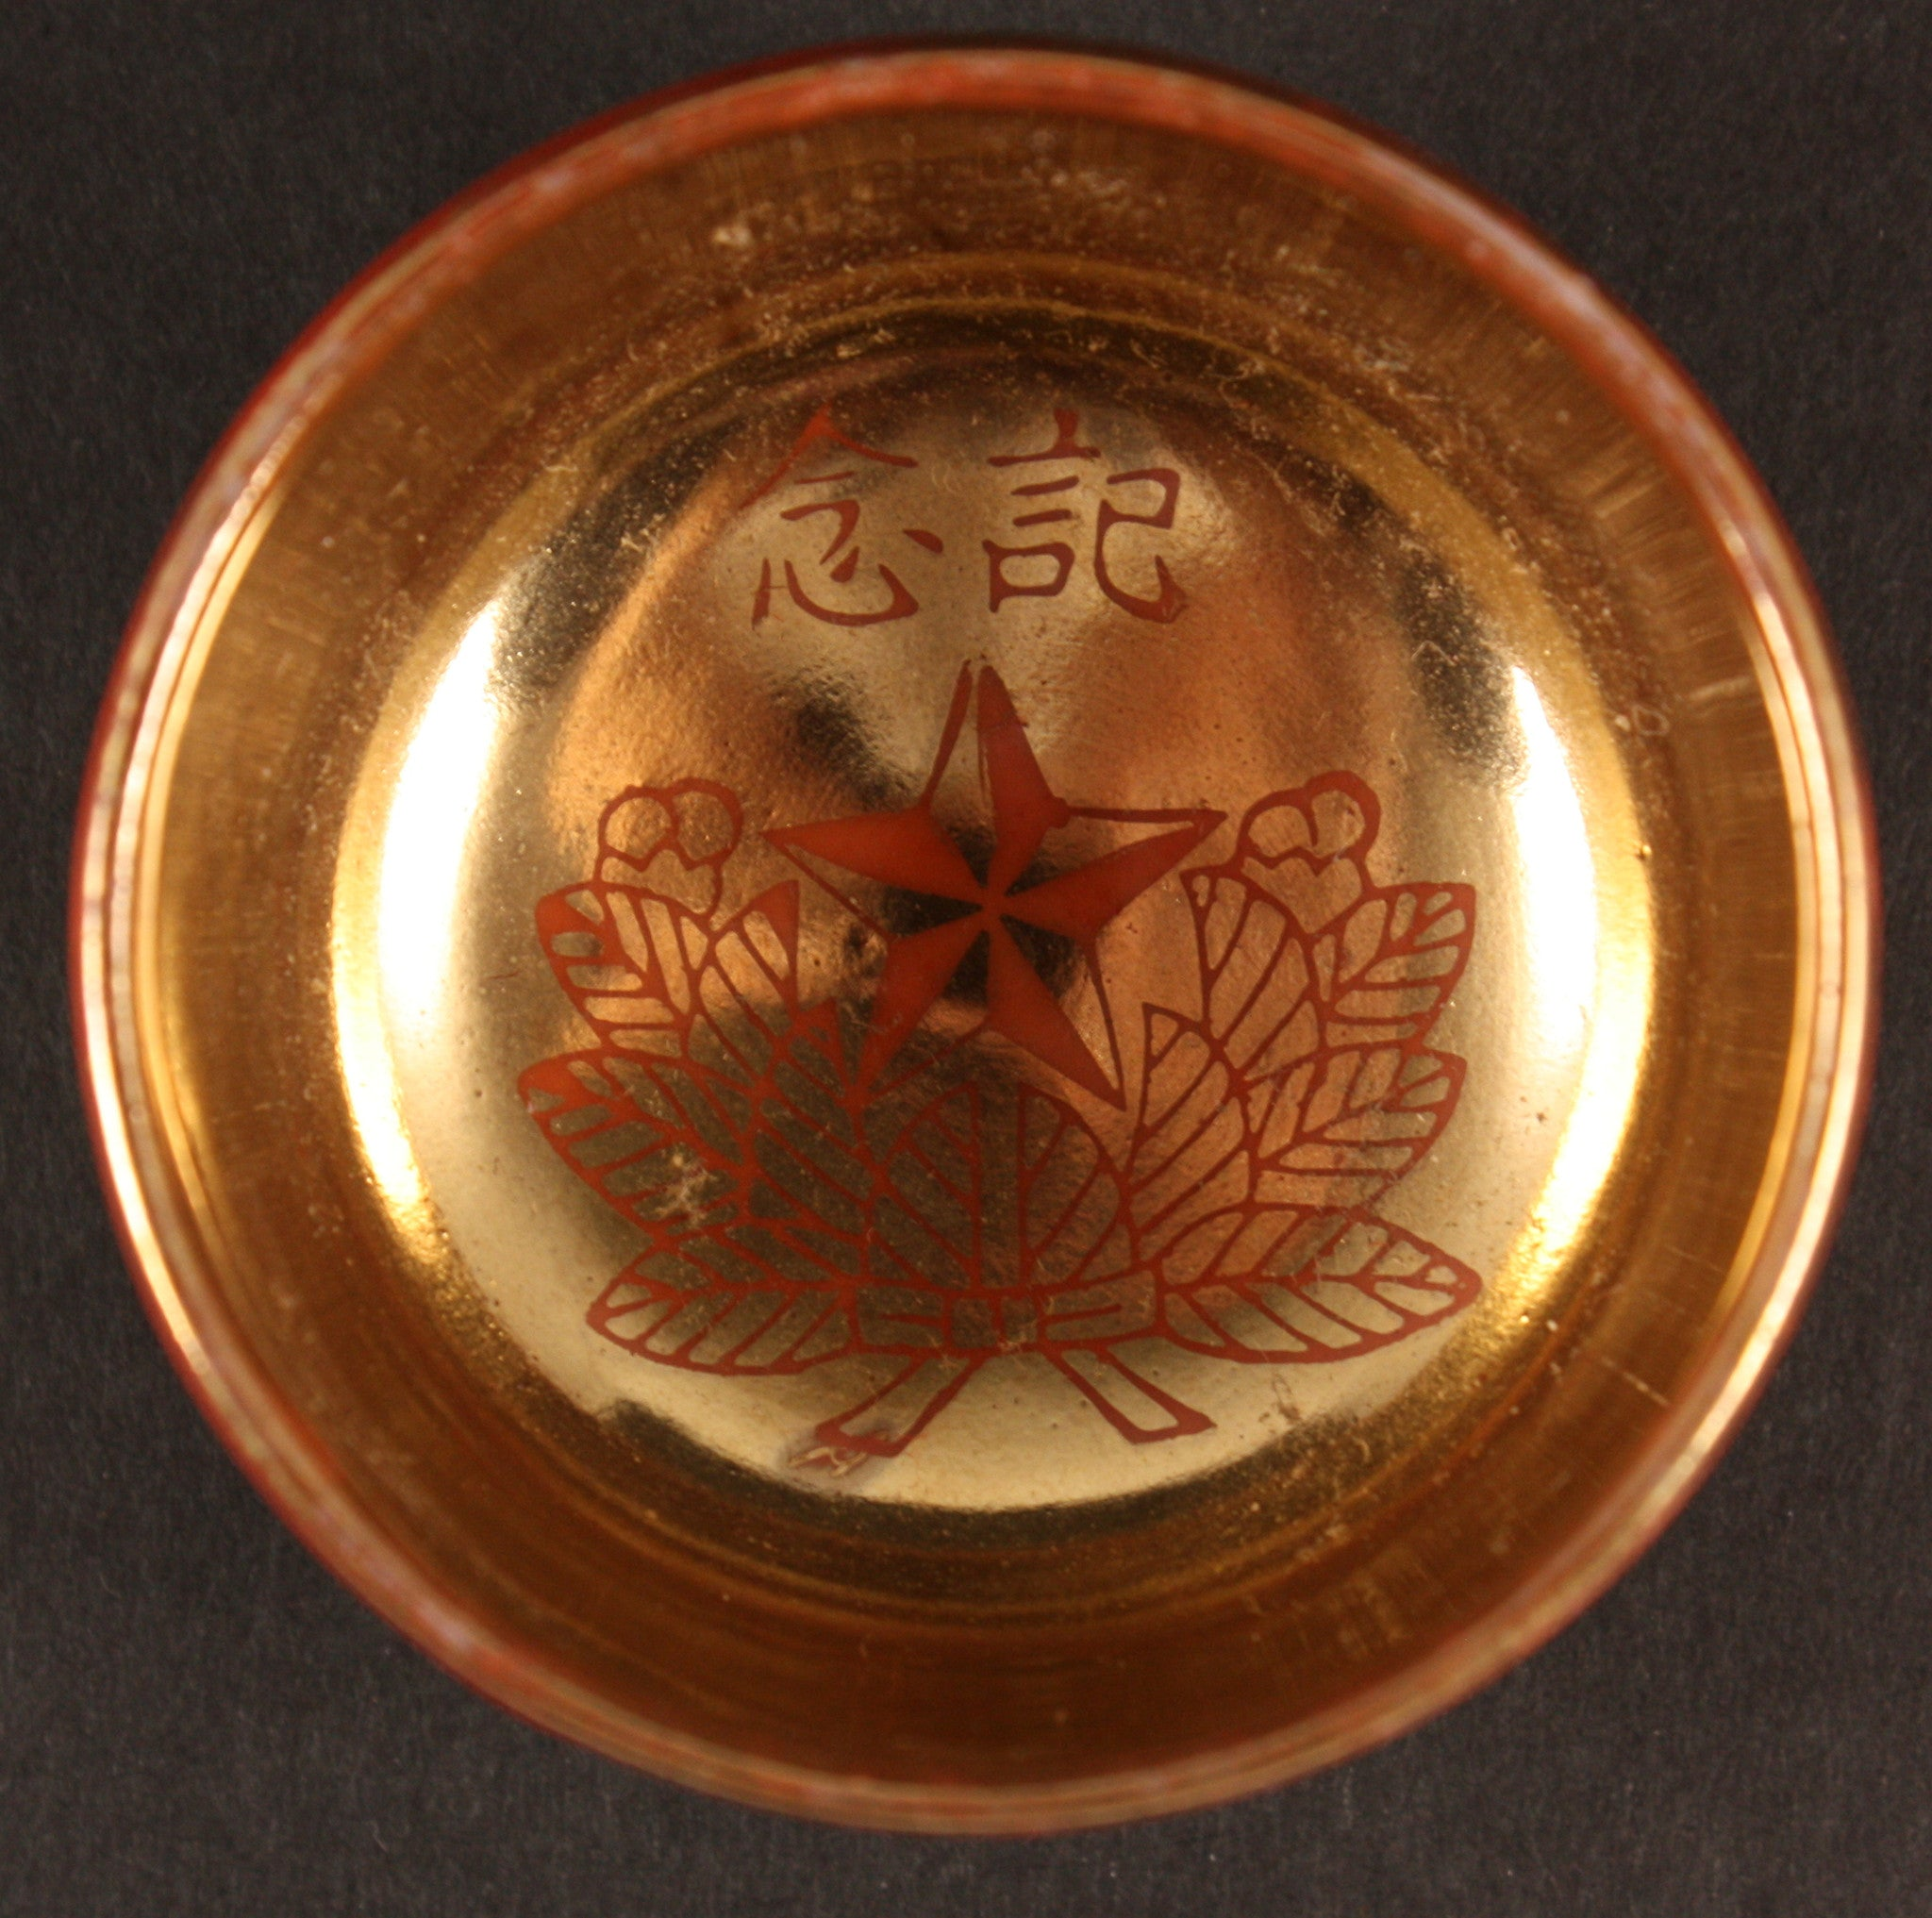 Antique Japanese Military Kutani Goldwash Imperial Guards Army Sake Cup